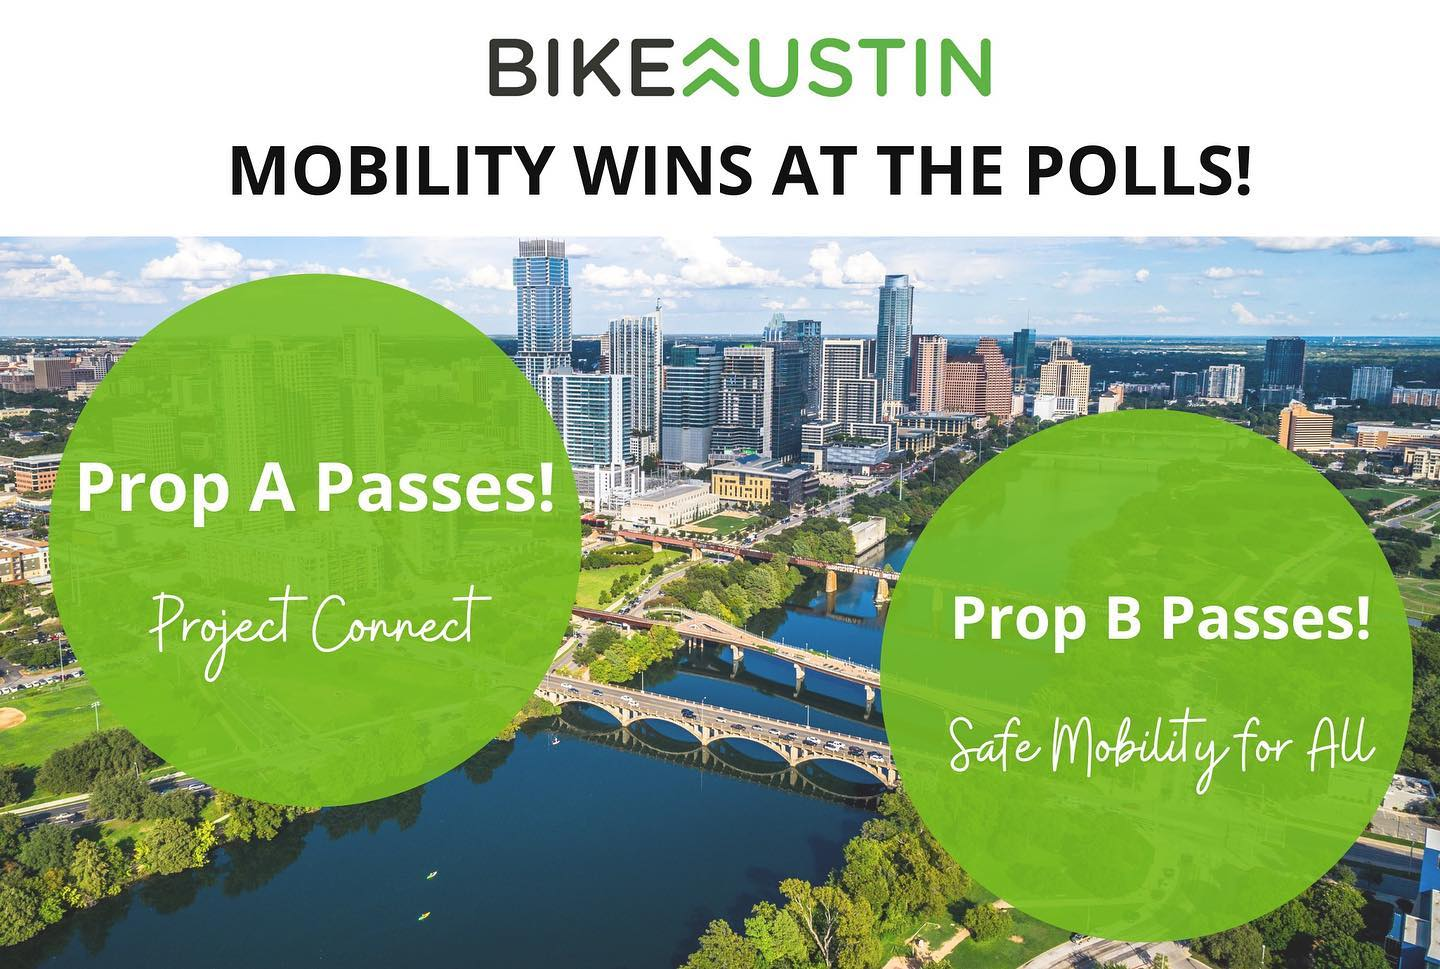 BikeAustin: Mobility WINS at the Polls! Bubbles over photo of Town Lake's bridges & the Austin skyline say:Prop A Passes! Project Connect, Prop B Passes! Safe Mobility for All